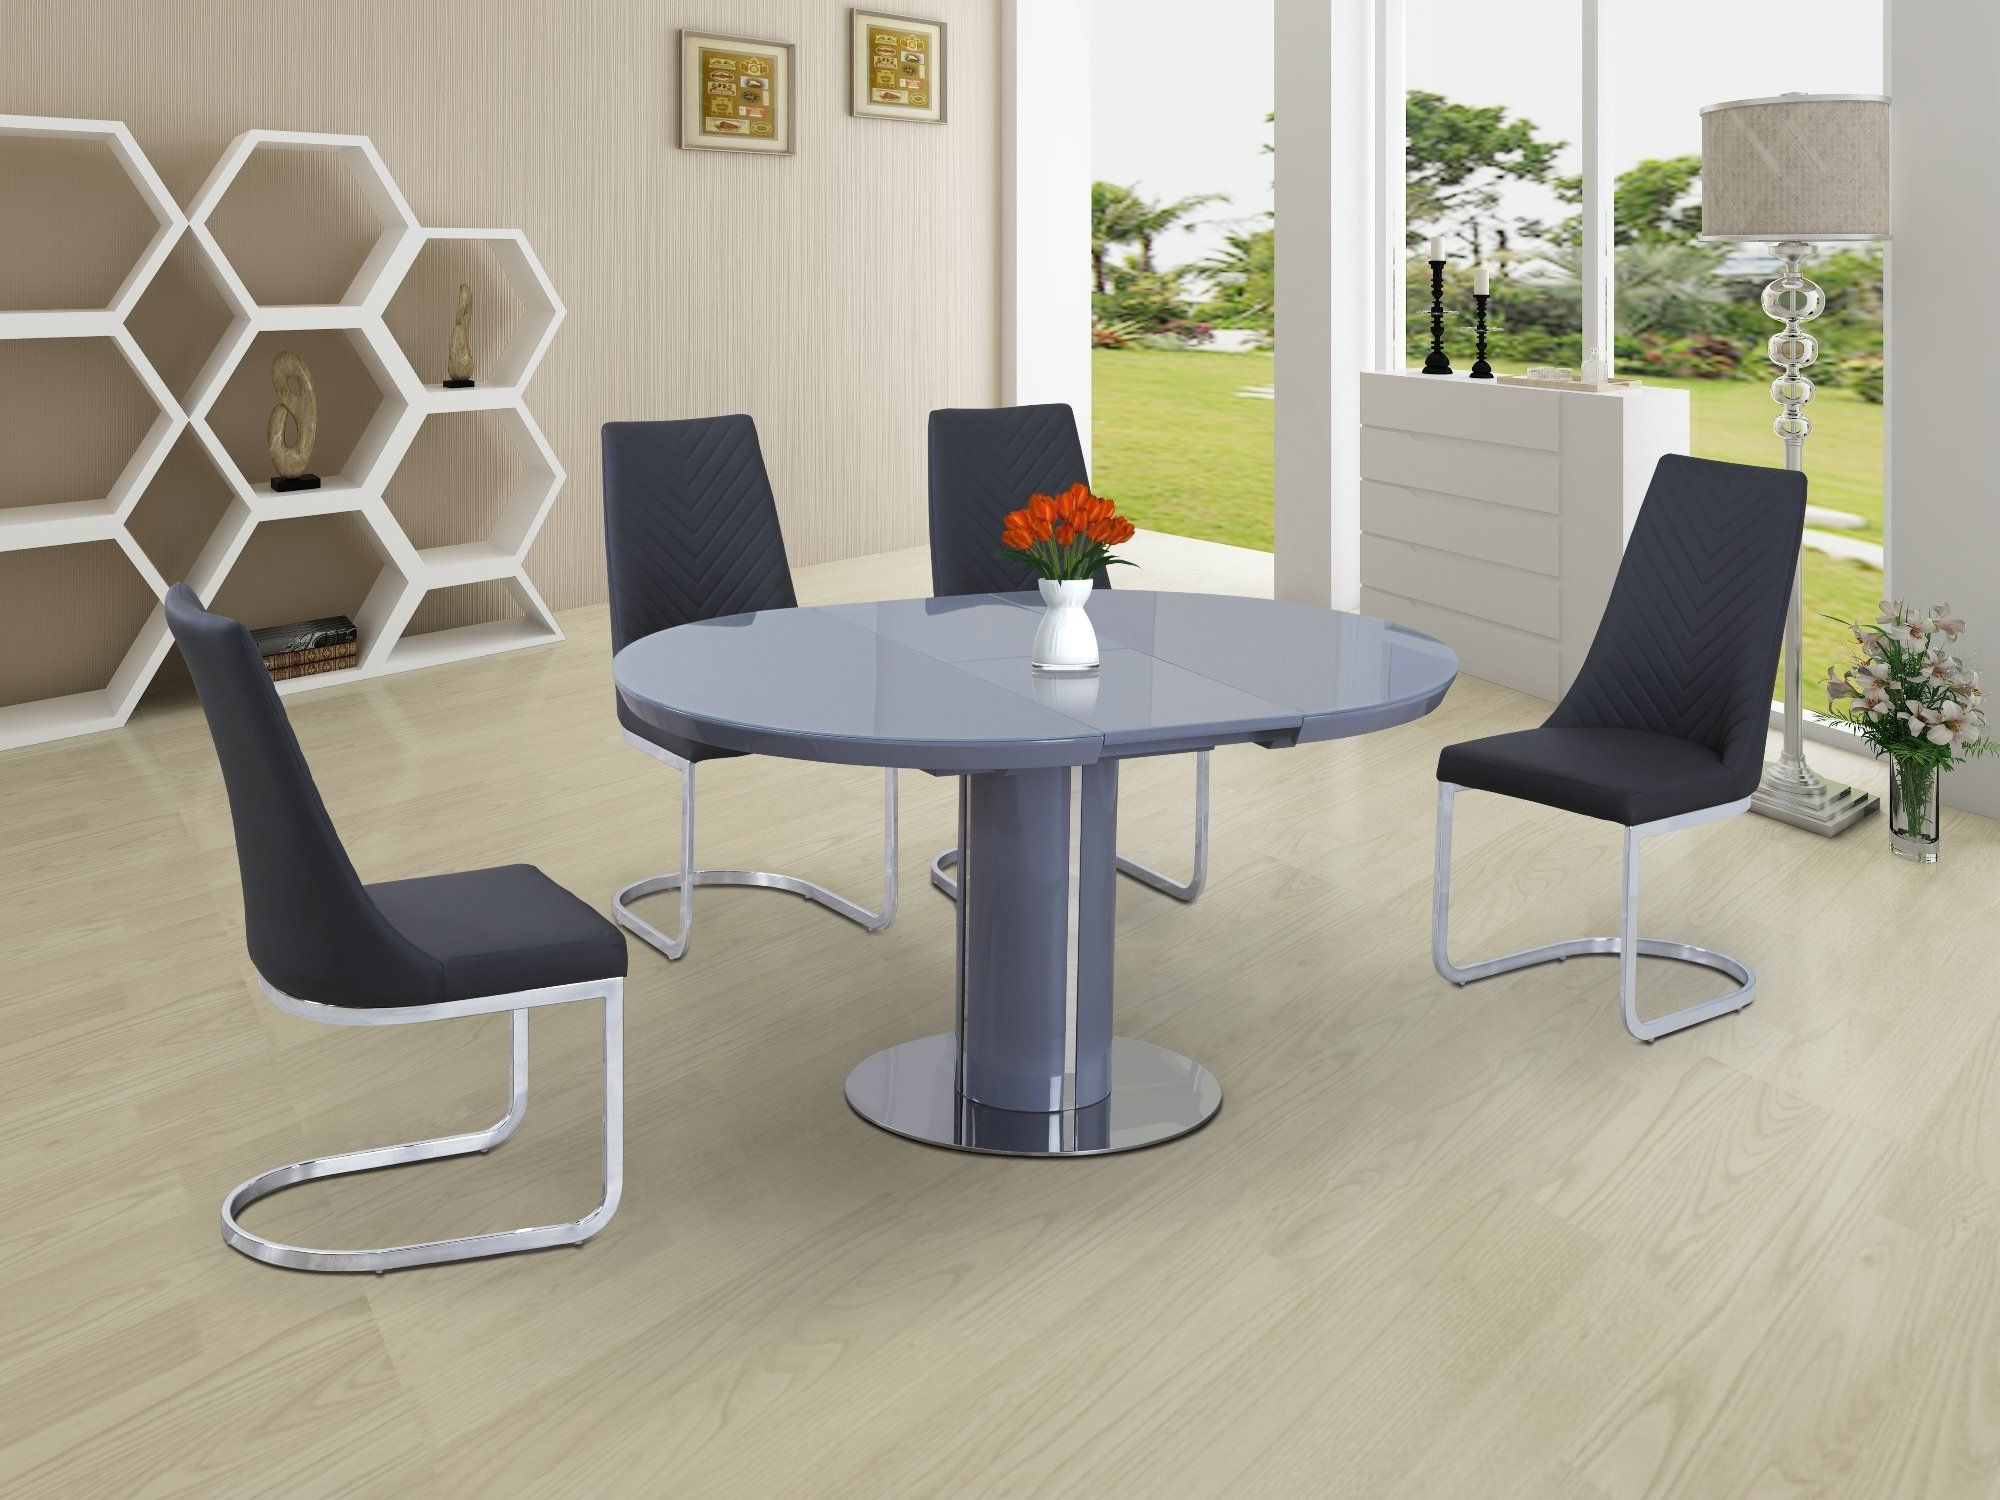 Well Known Eclipse Round Oval Gloss & Glass Extending 110 To 145 Cm Dining Regarding Grey Gloss Dining Tables (View 4 of 25)